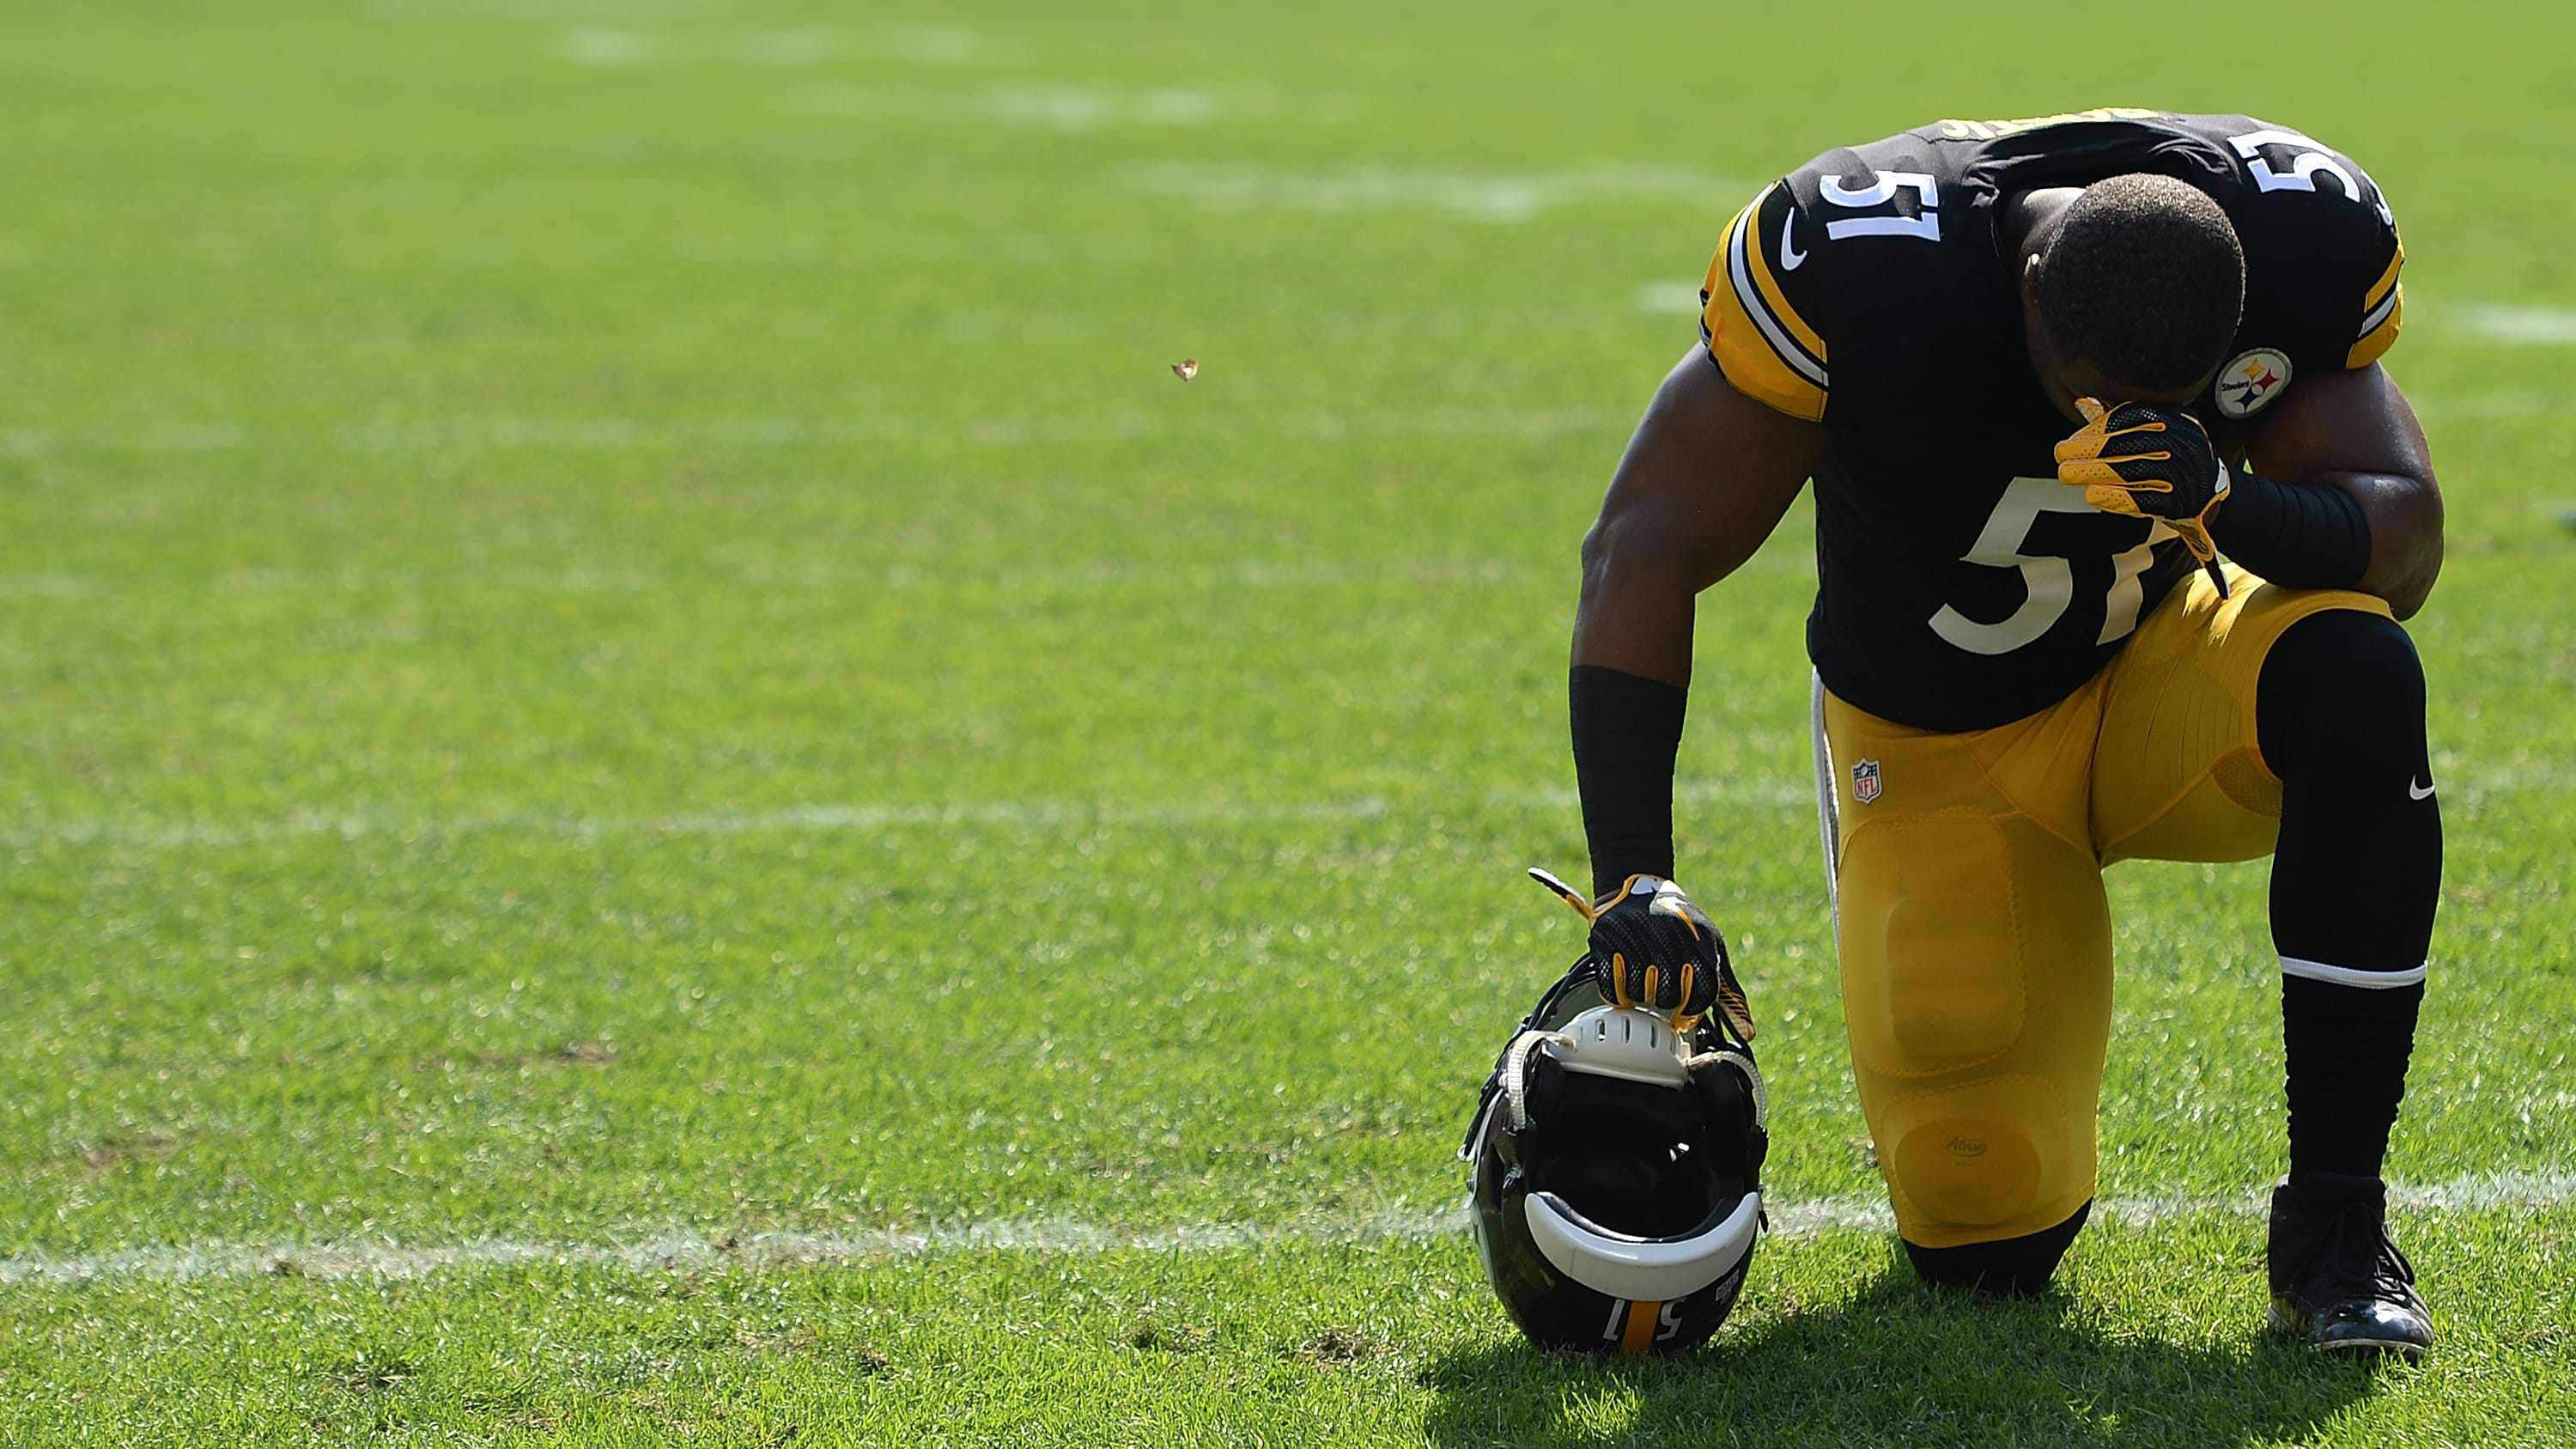 PITTSBURGH, PA - OCTOBER 07: Jon Bostic #51 of the Pittsburgh Steelers kneels in the end zone before the start of the game against the Atlanta Falcons at Heinz Field on October 7, 2018 in Pittsburgh, Pennsylvania. (Photo by Justin Berl/Getty Images)